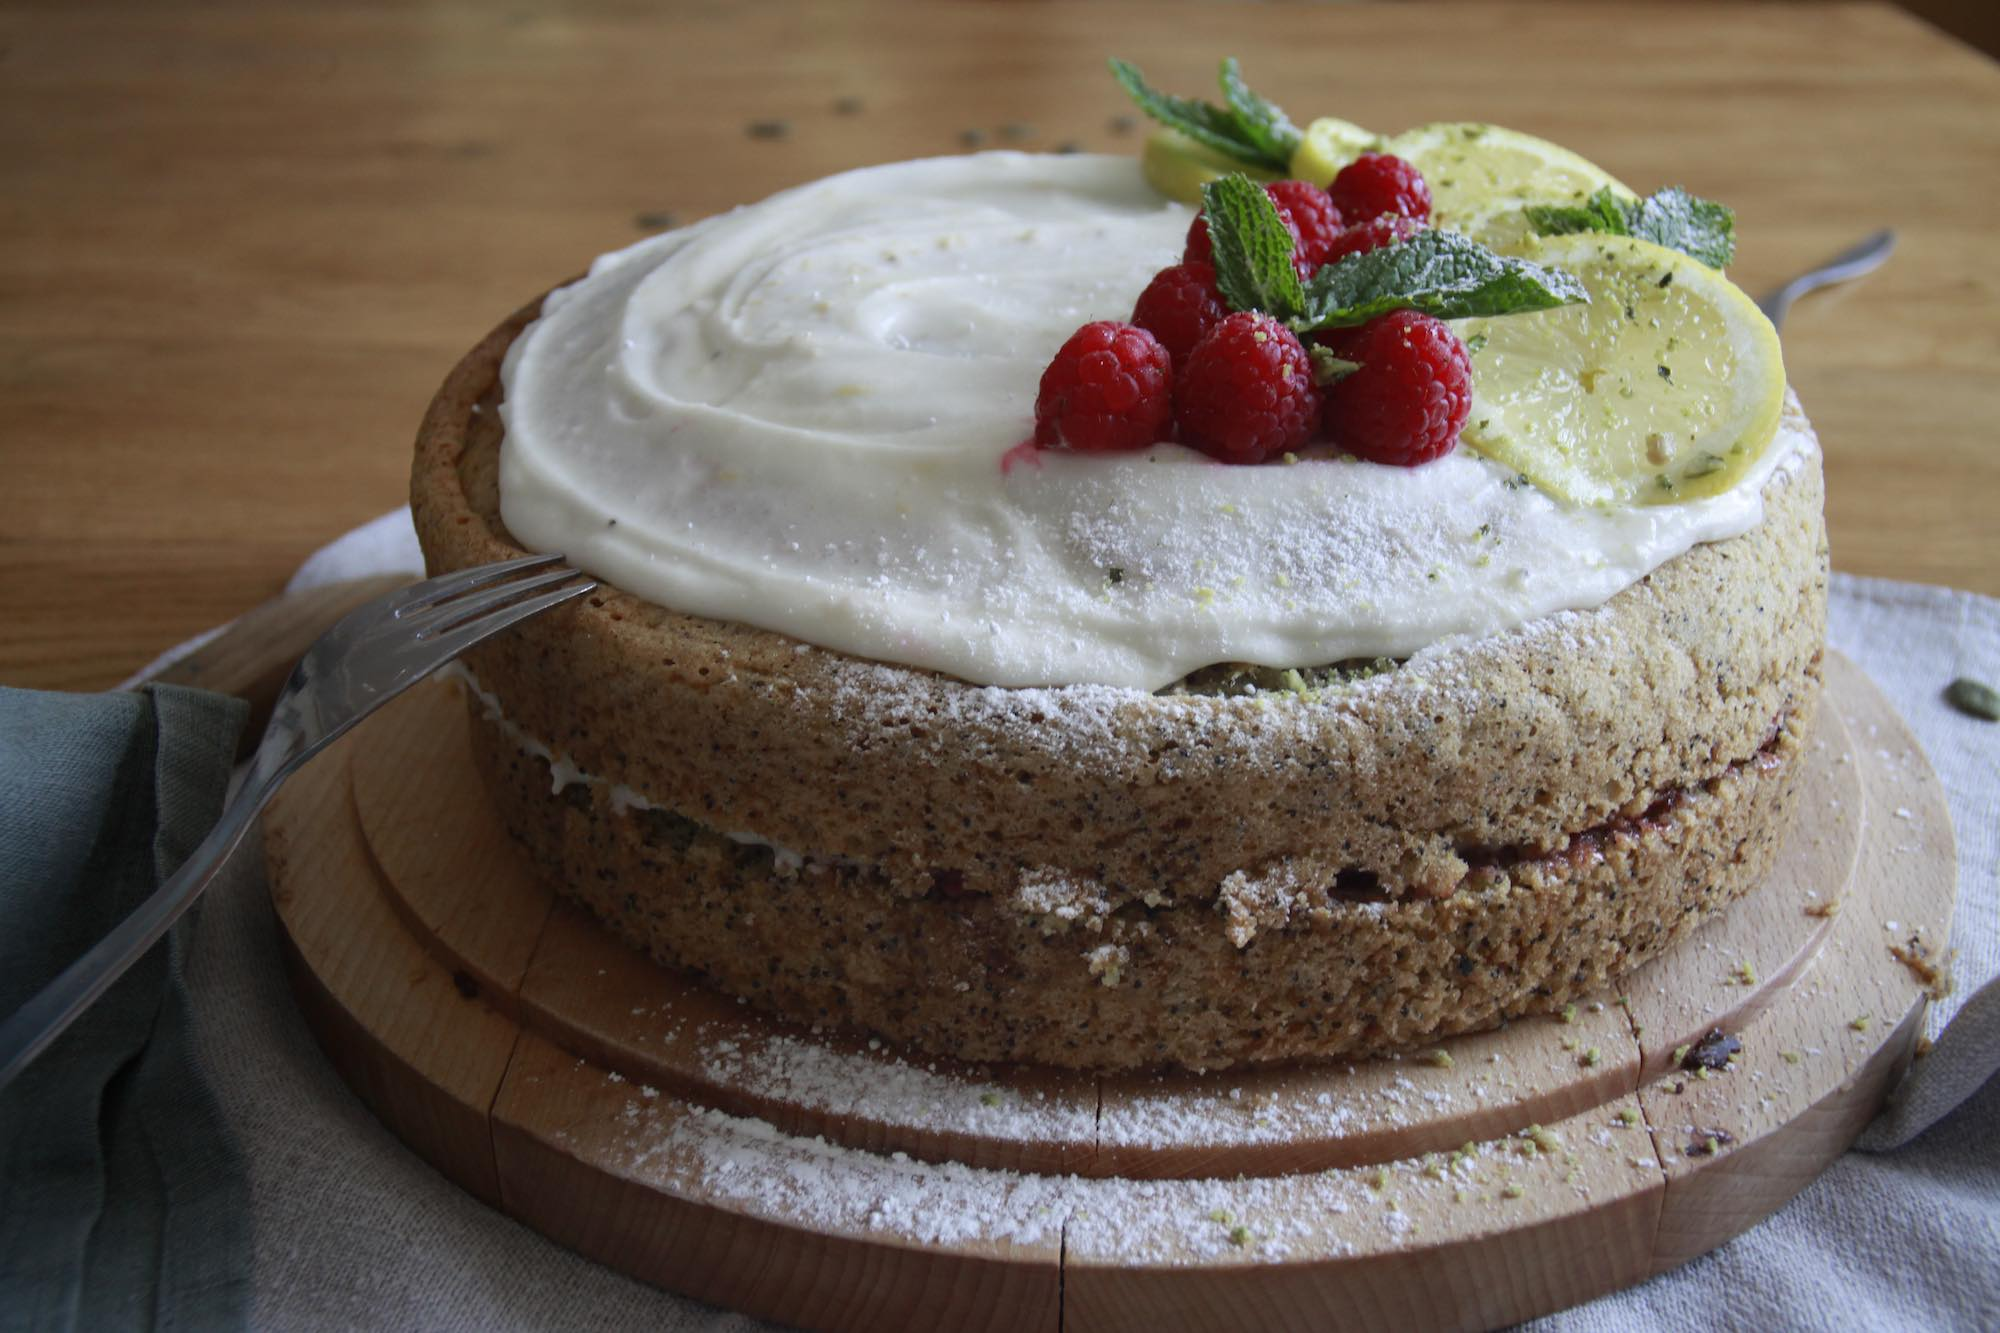 Vegan Lemon and Poppyseed Cake